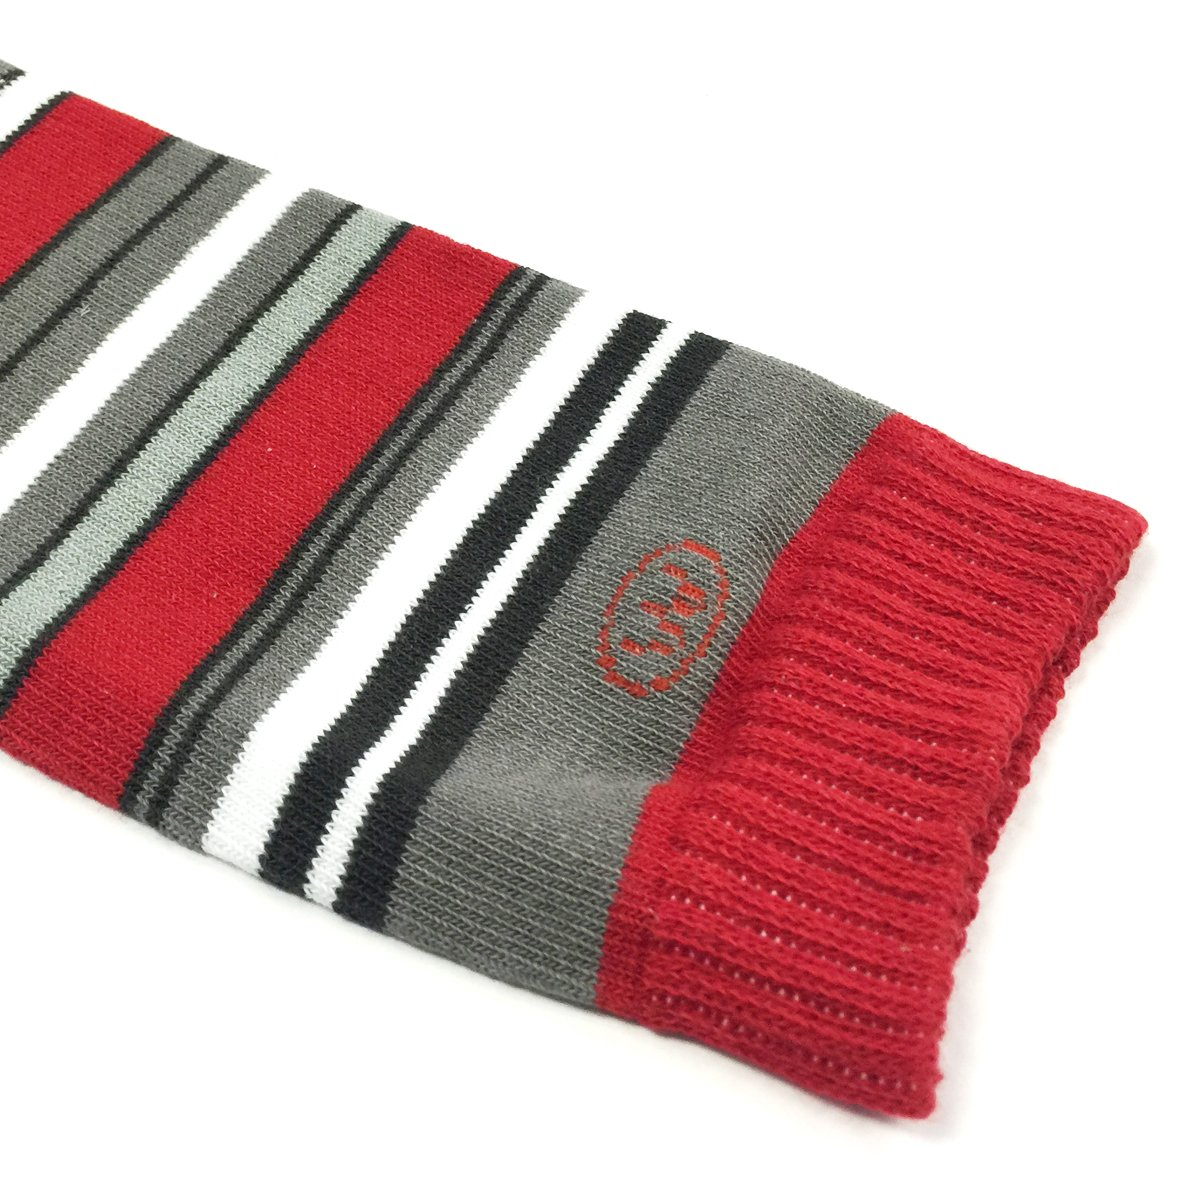 Wrapables Colorful Baby Leg Warmers, Stripes Red and Gray by Wrapables (Image #2)